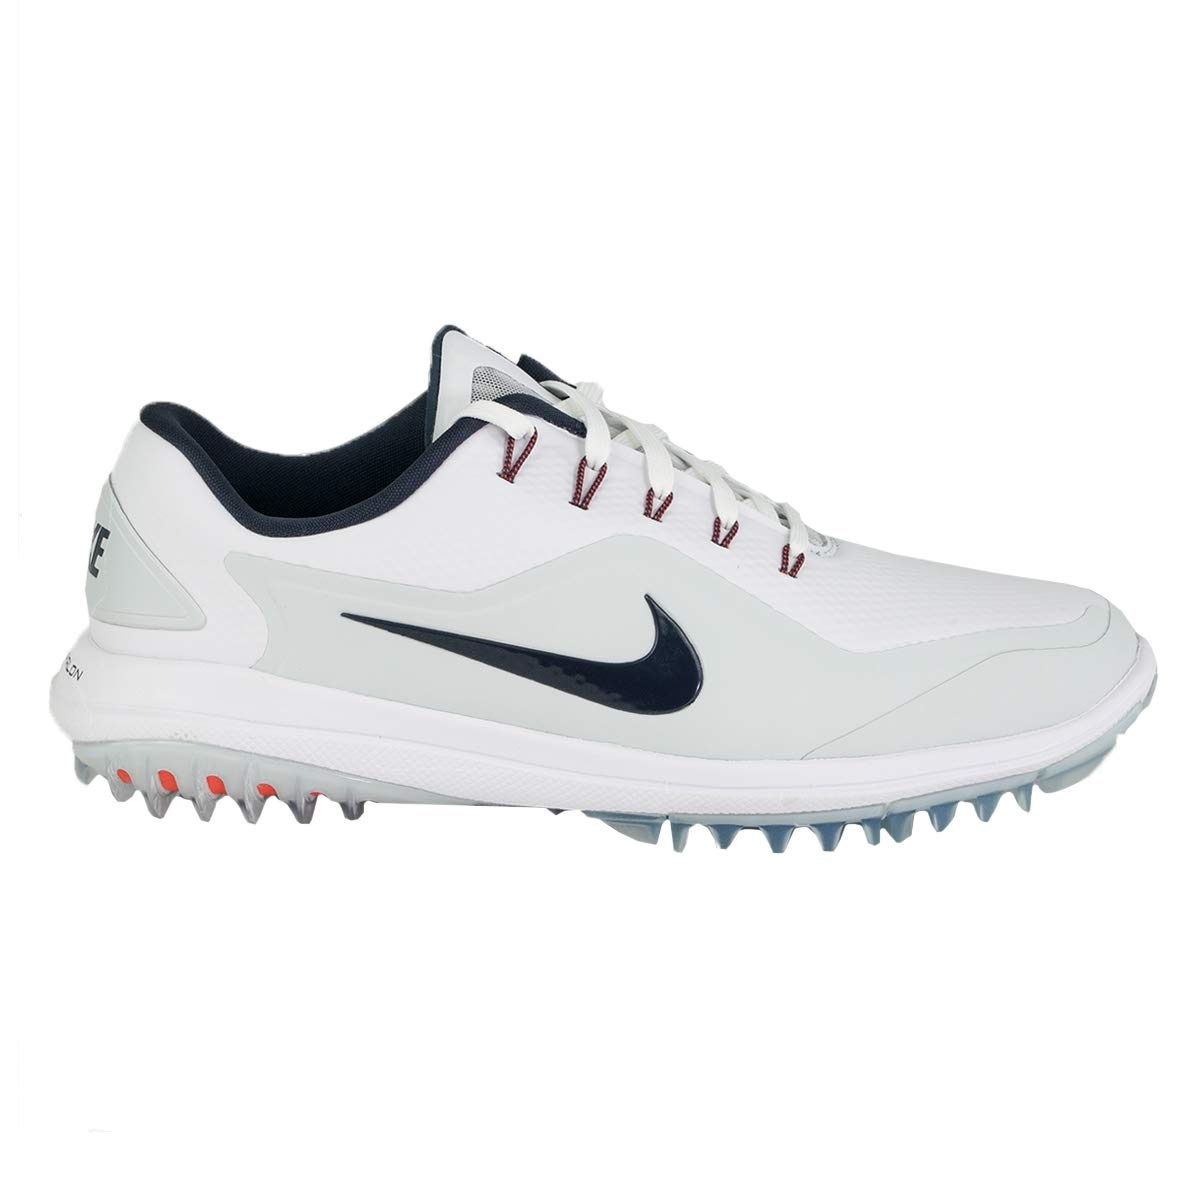 d0e531f3309d Galleon - NIKE Men s Lunar Control Vapor 2 Golf Shoes White Thunder Blue  10.5